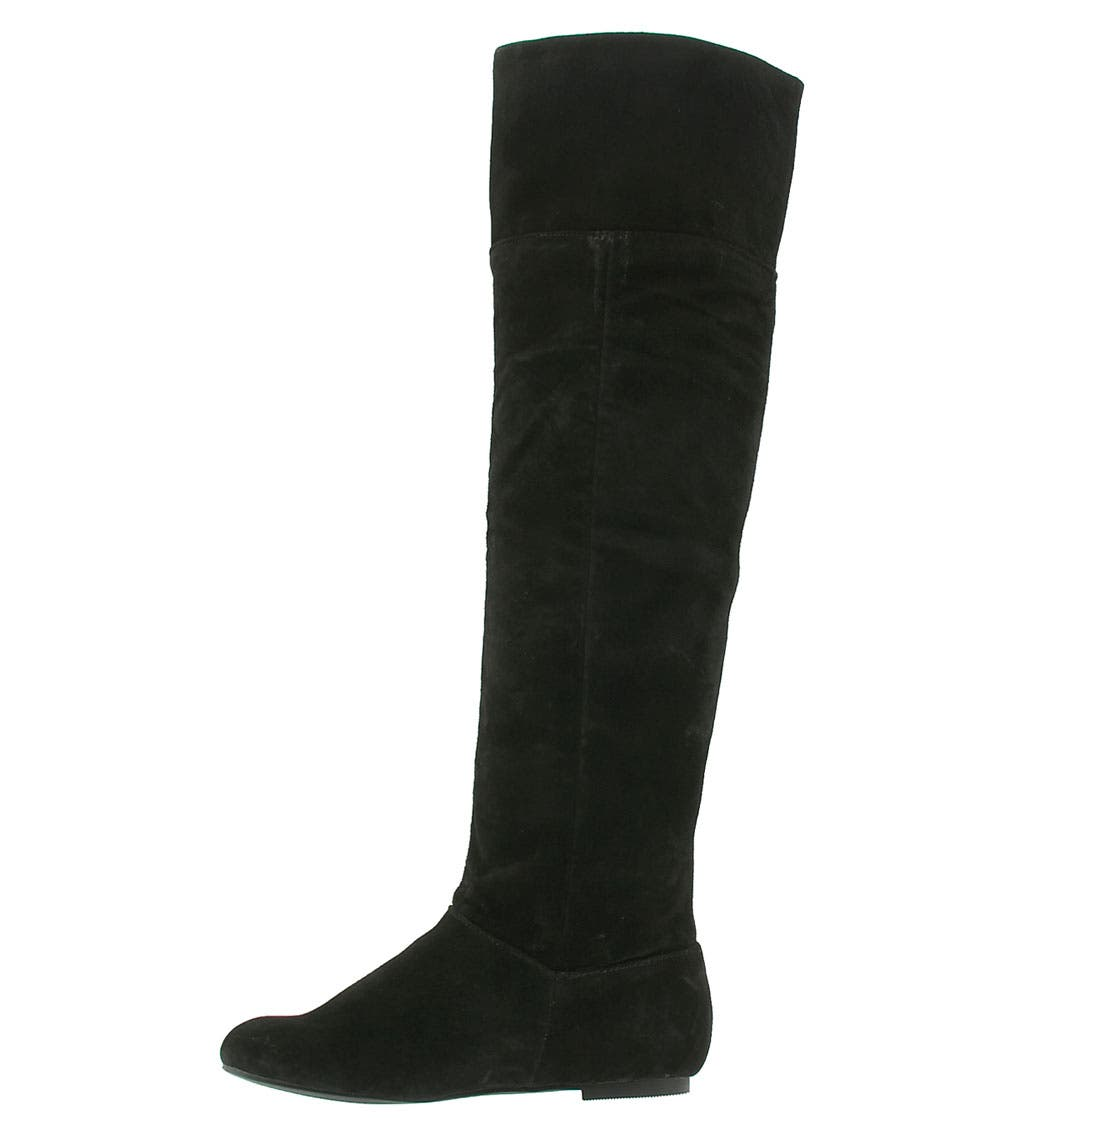 CHINESE LAUNDRY,                             'Trust Me' Over the Knee Boot,                             Alternate thumbnail 2, color,                             001